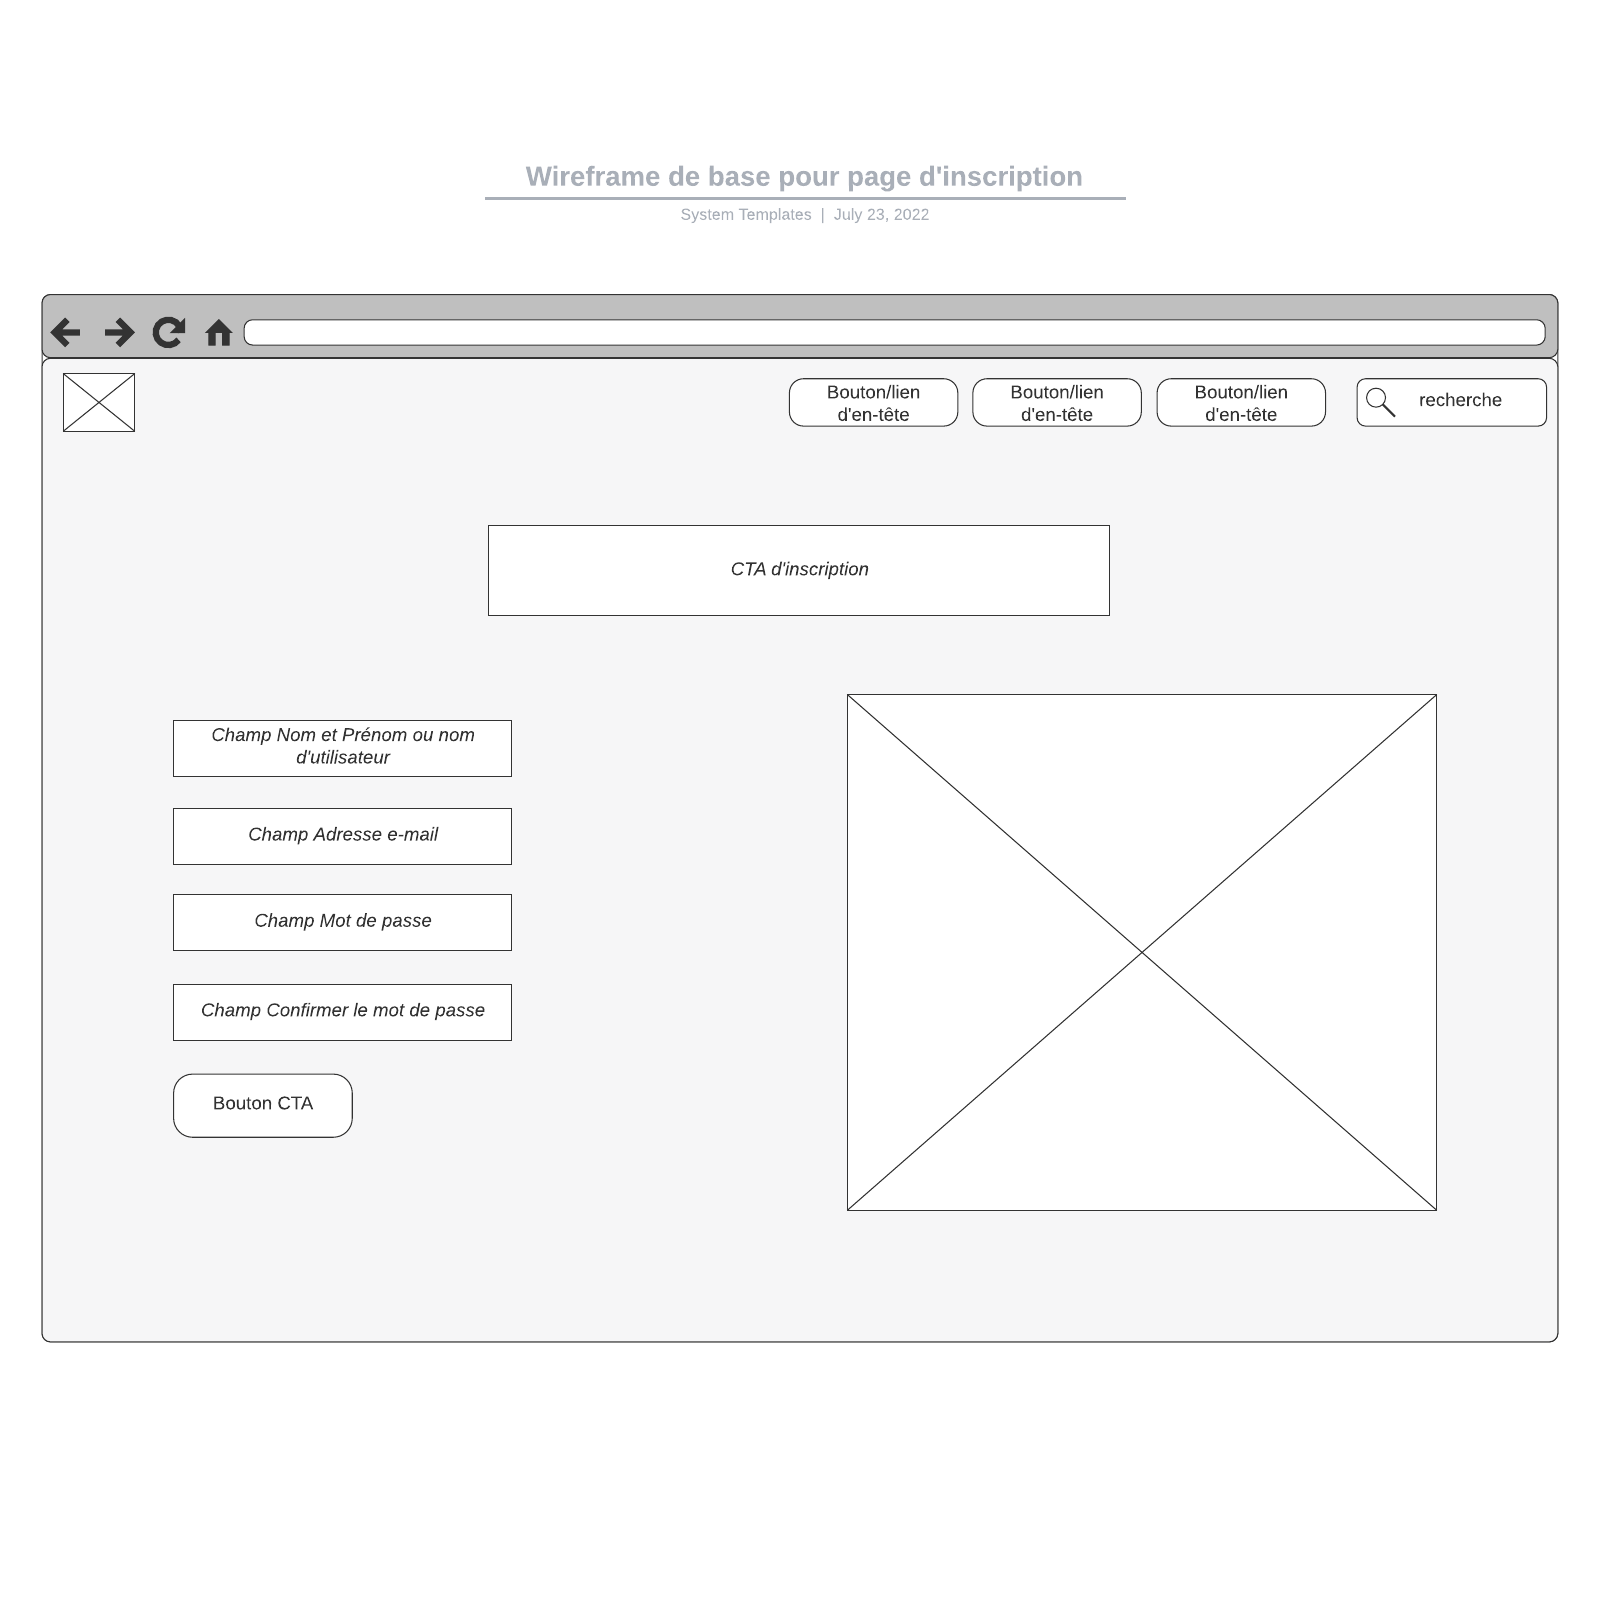 exemple de wireframe de base pour page d'inscription